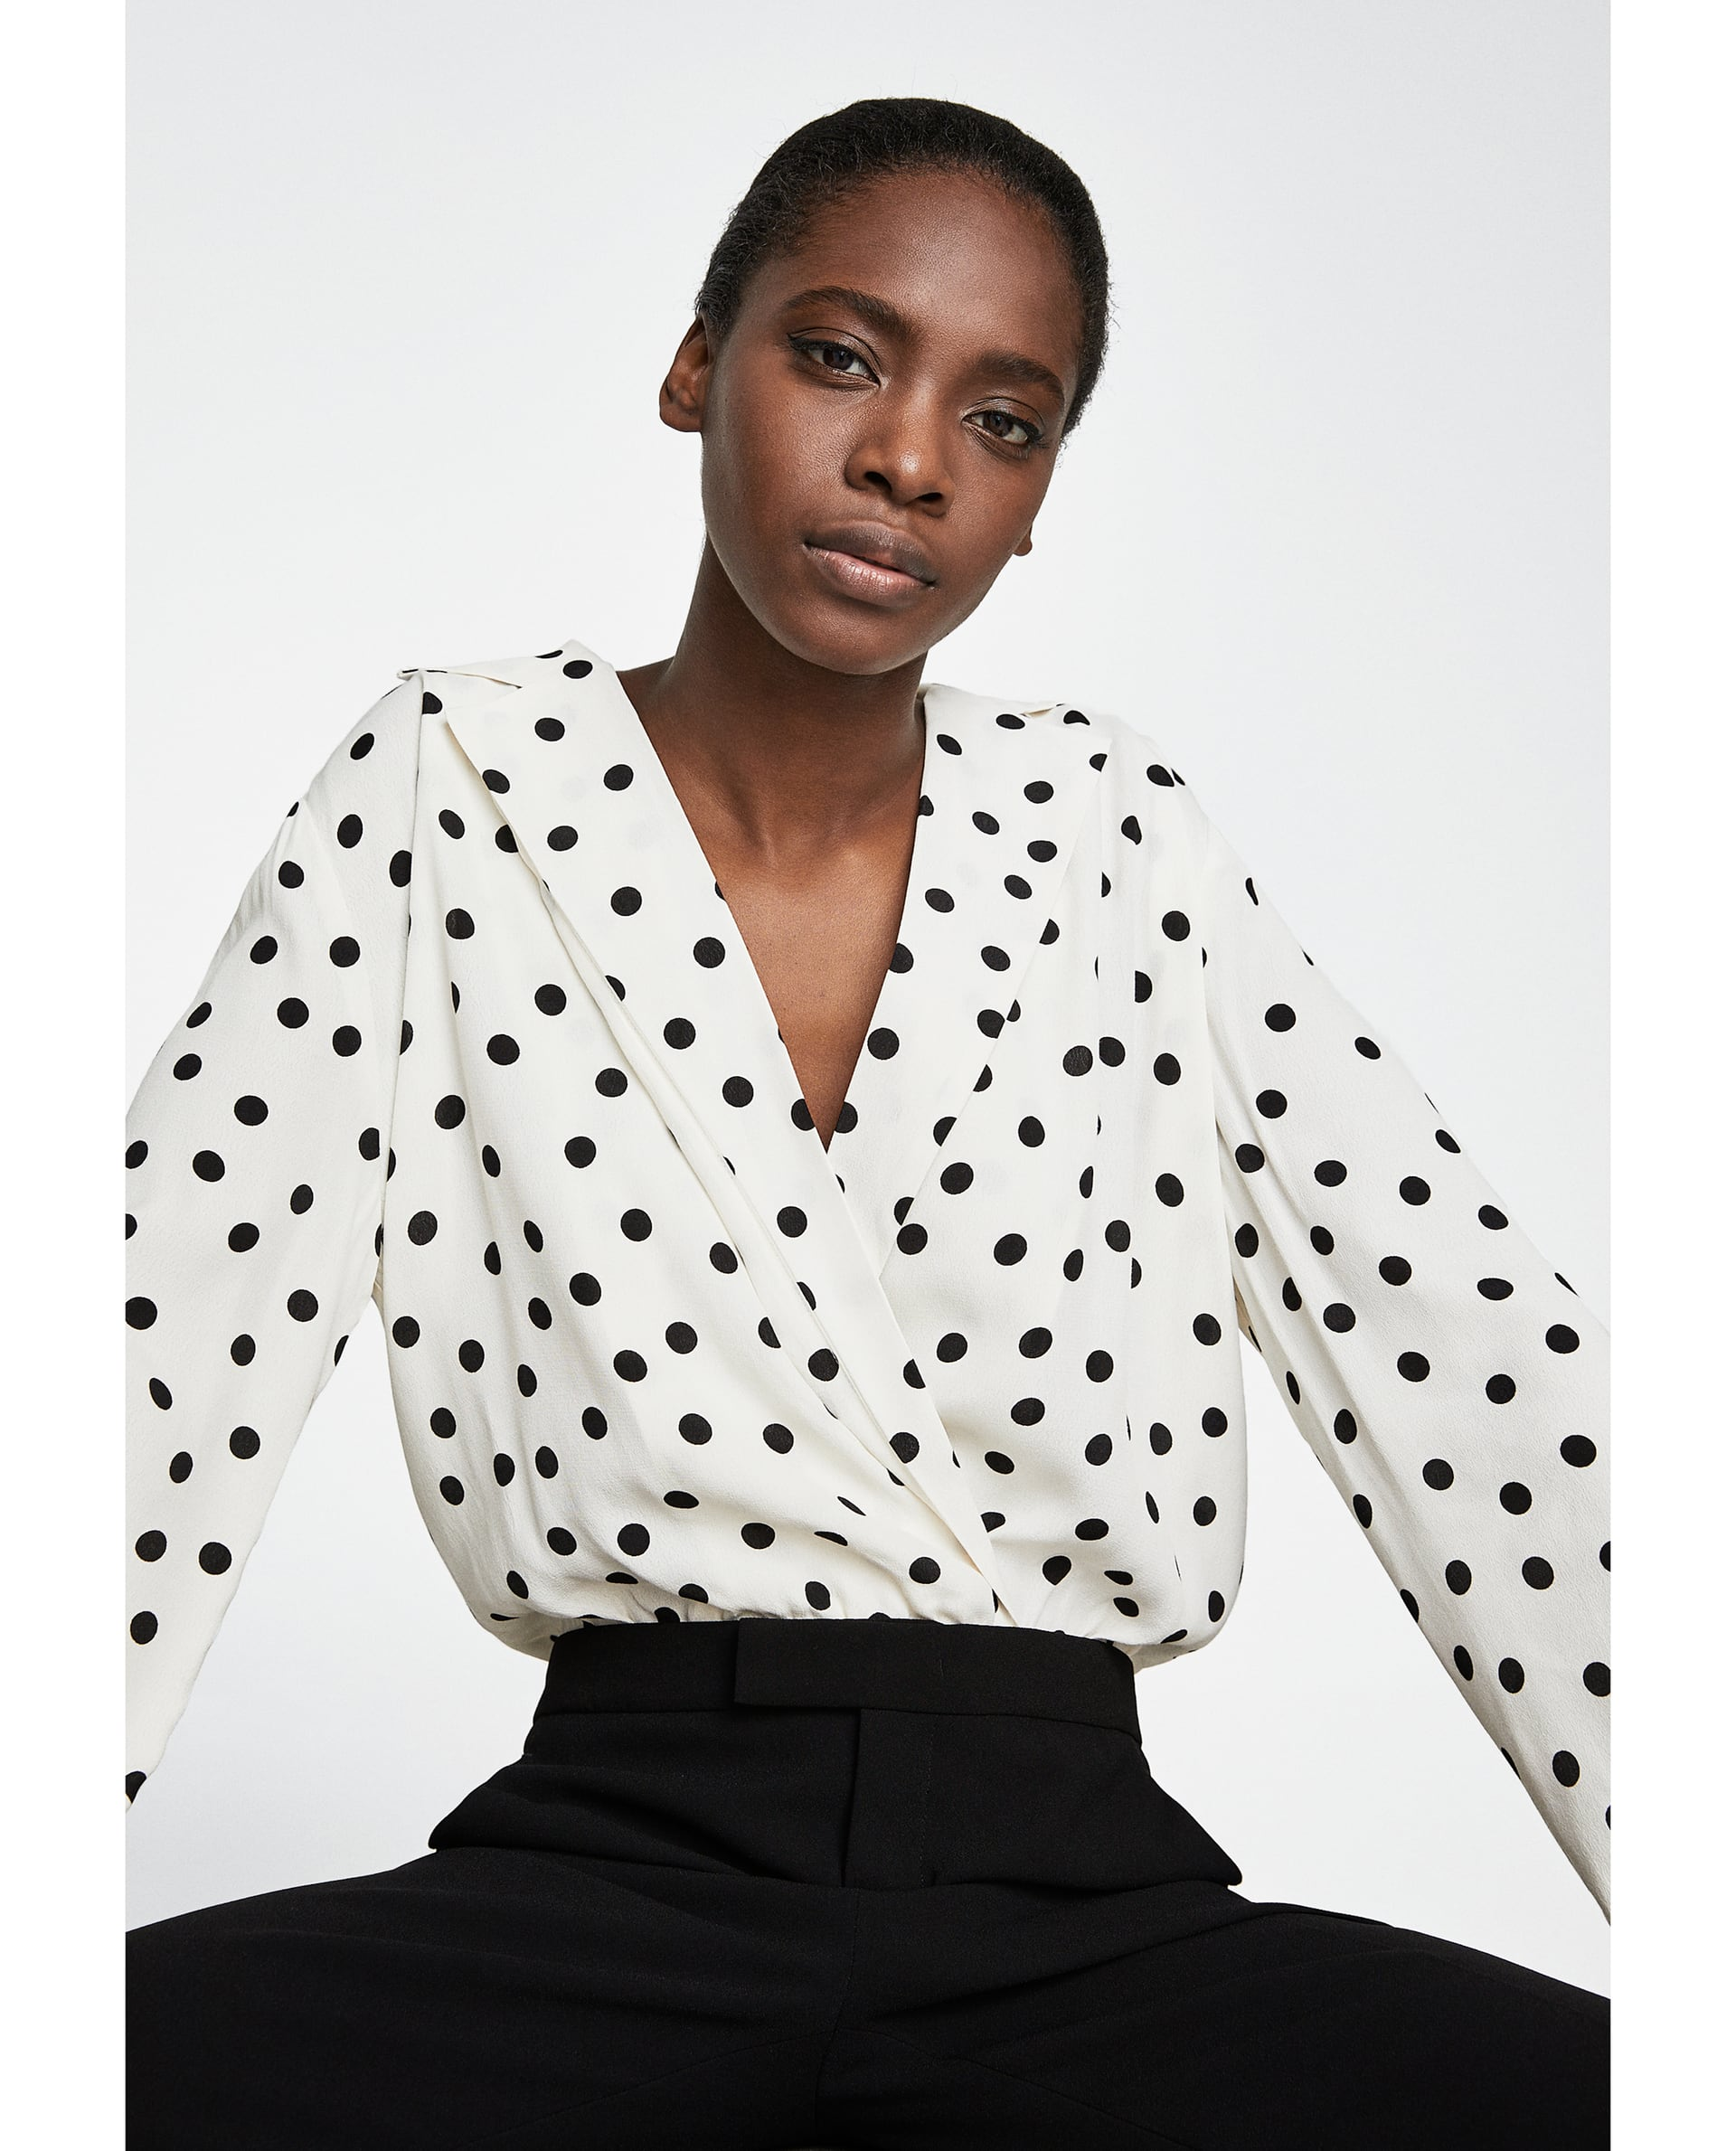 Fabulous Binky's €30 polka dot blouse is from Zara and available in ALL @PN38